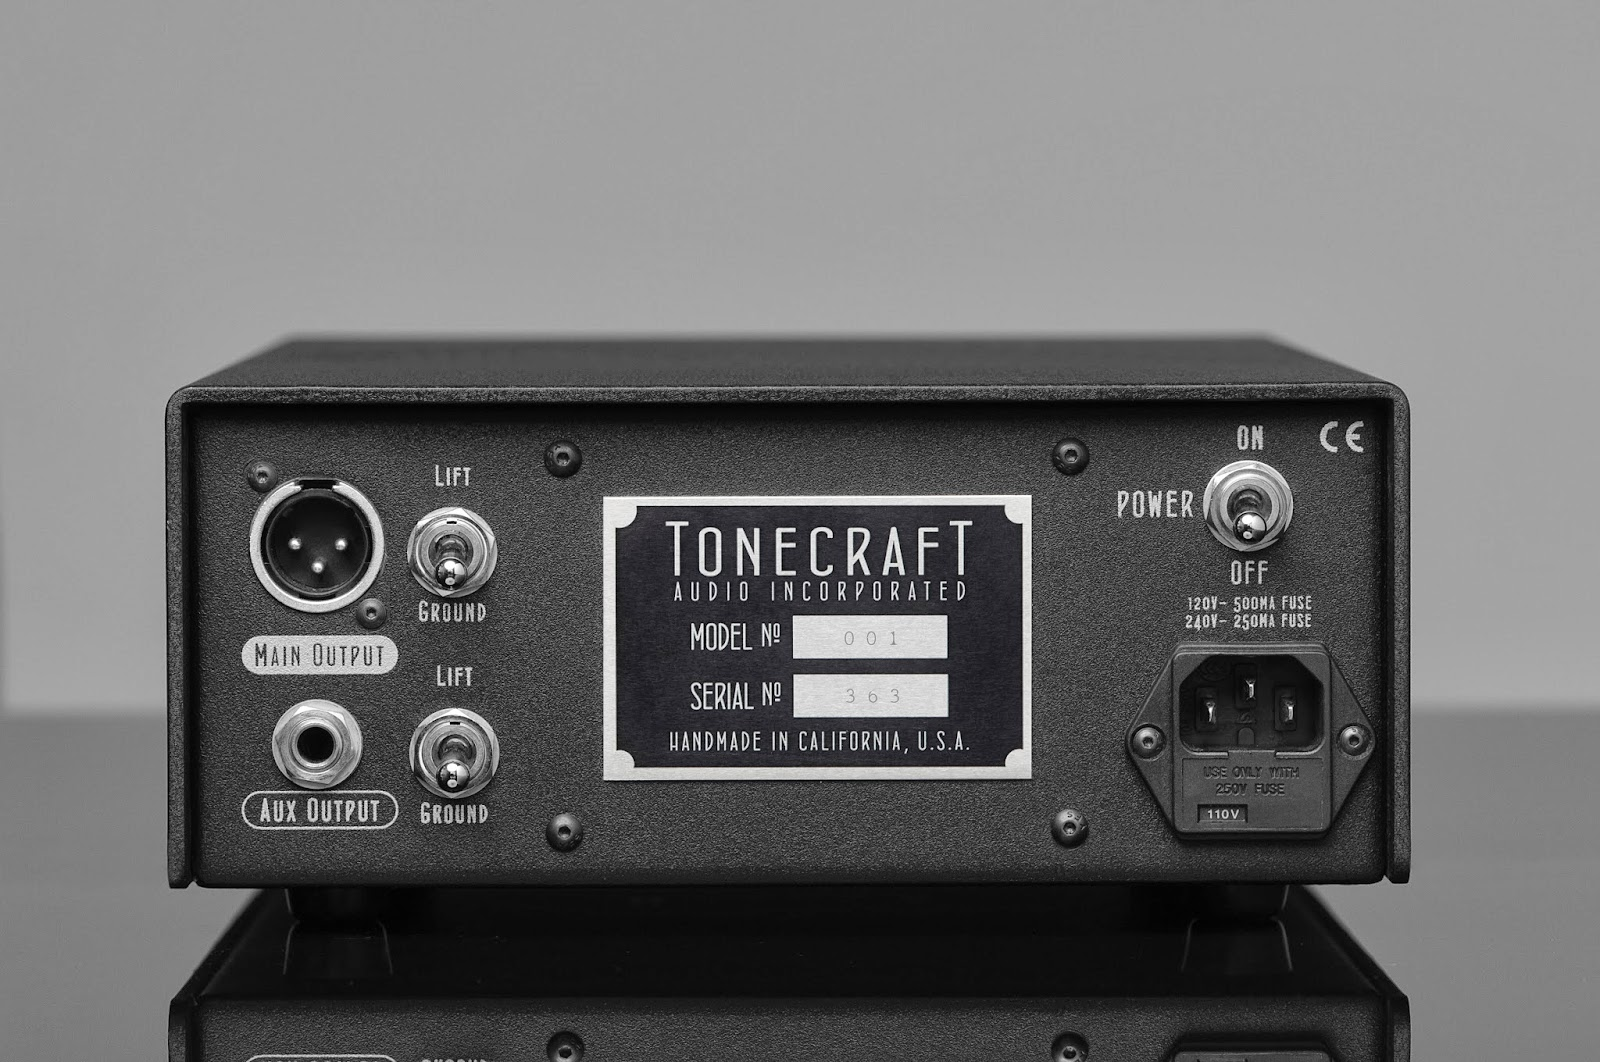 Gary Noble Show The Tonecraft 363 Tube Direct Box Passive 2band Baxandall Tone Control Circuit Color As Well It Has Tons Of Gain 40db And Dual Outputs 2 Band Eq With 20db Boost Cut Along A Bypass Switch Is Nice Addition